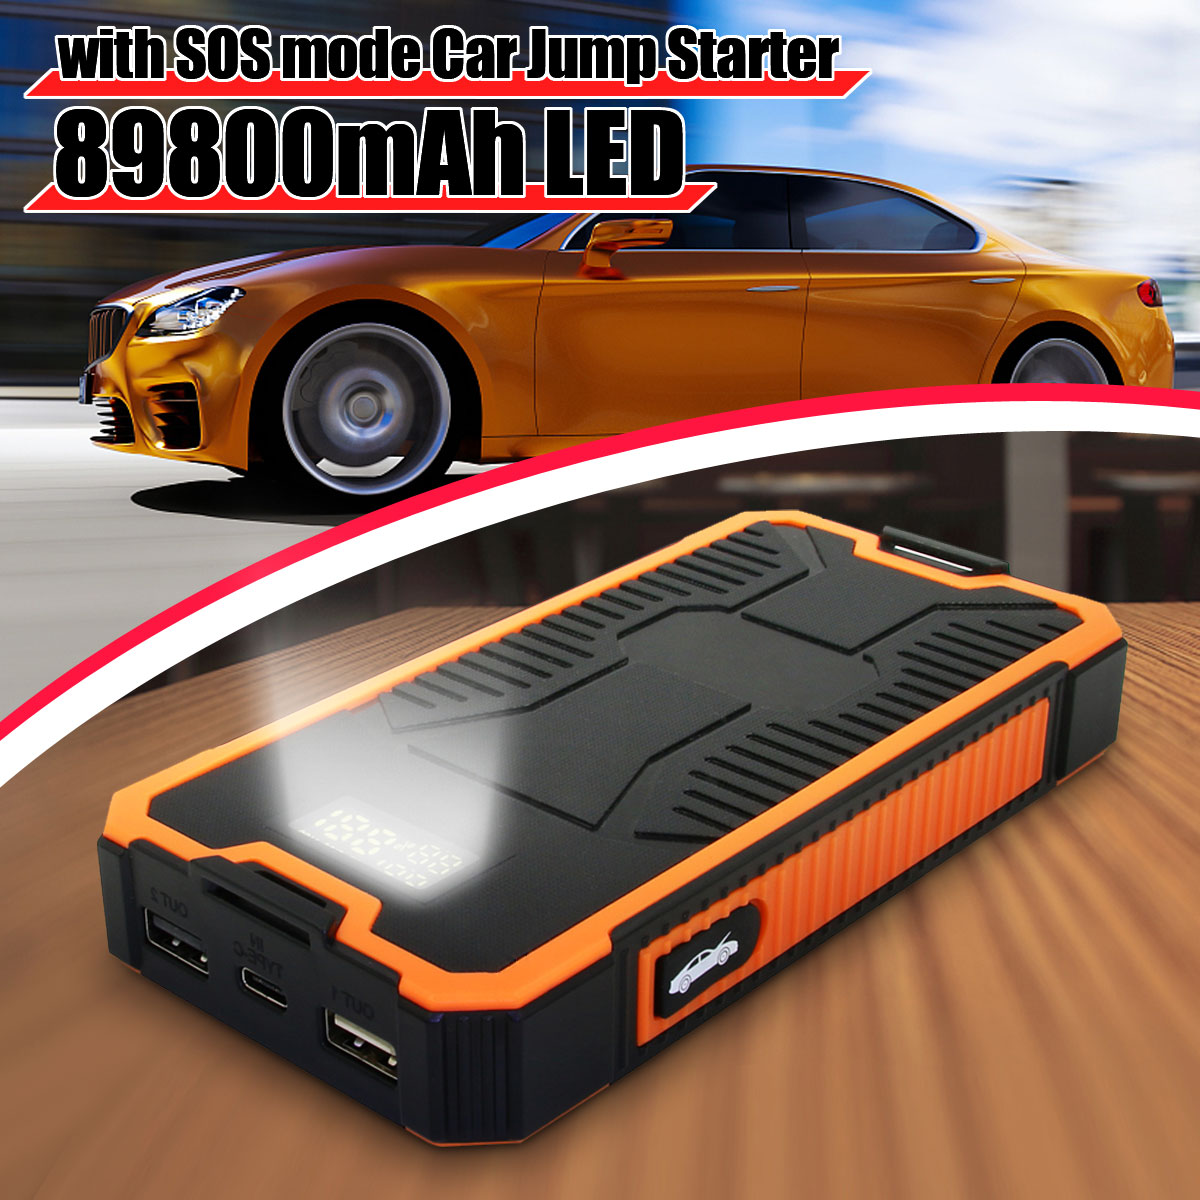 2A Fast Charger Car Jump Starter Power Supply 89800mAh Battery Booster USB Power Bank 9V Dual USB Output With Display(China)